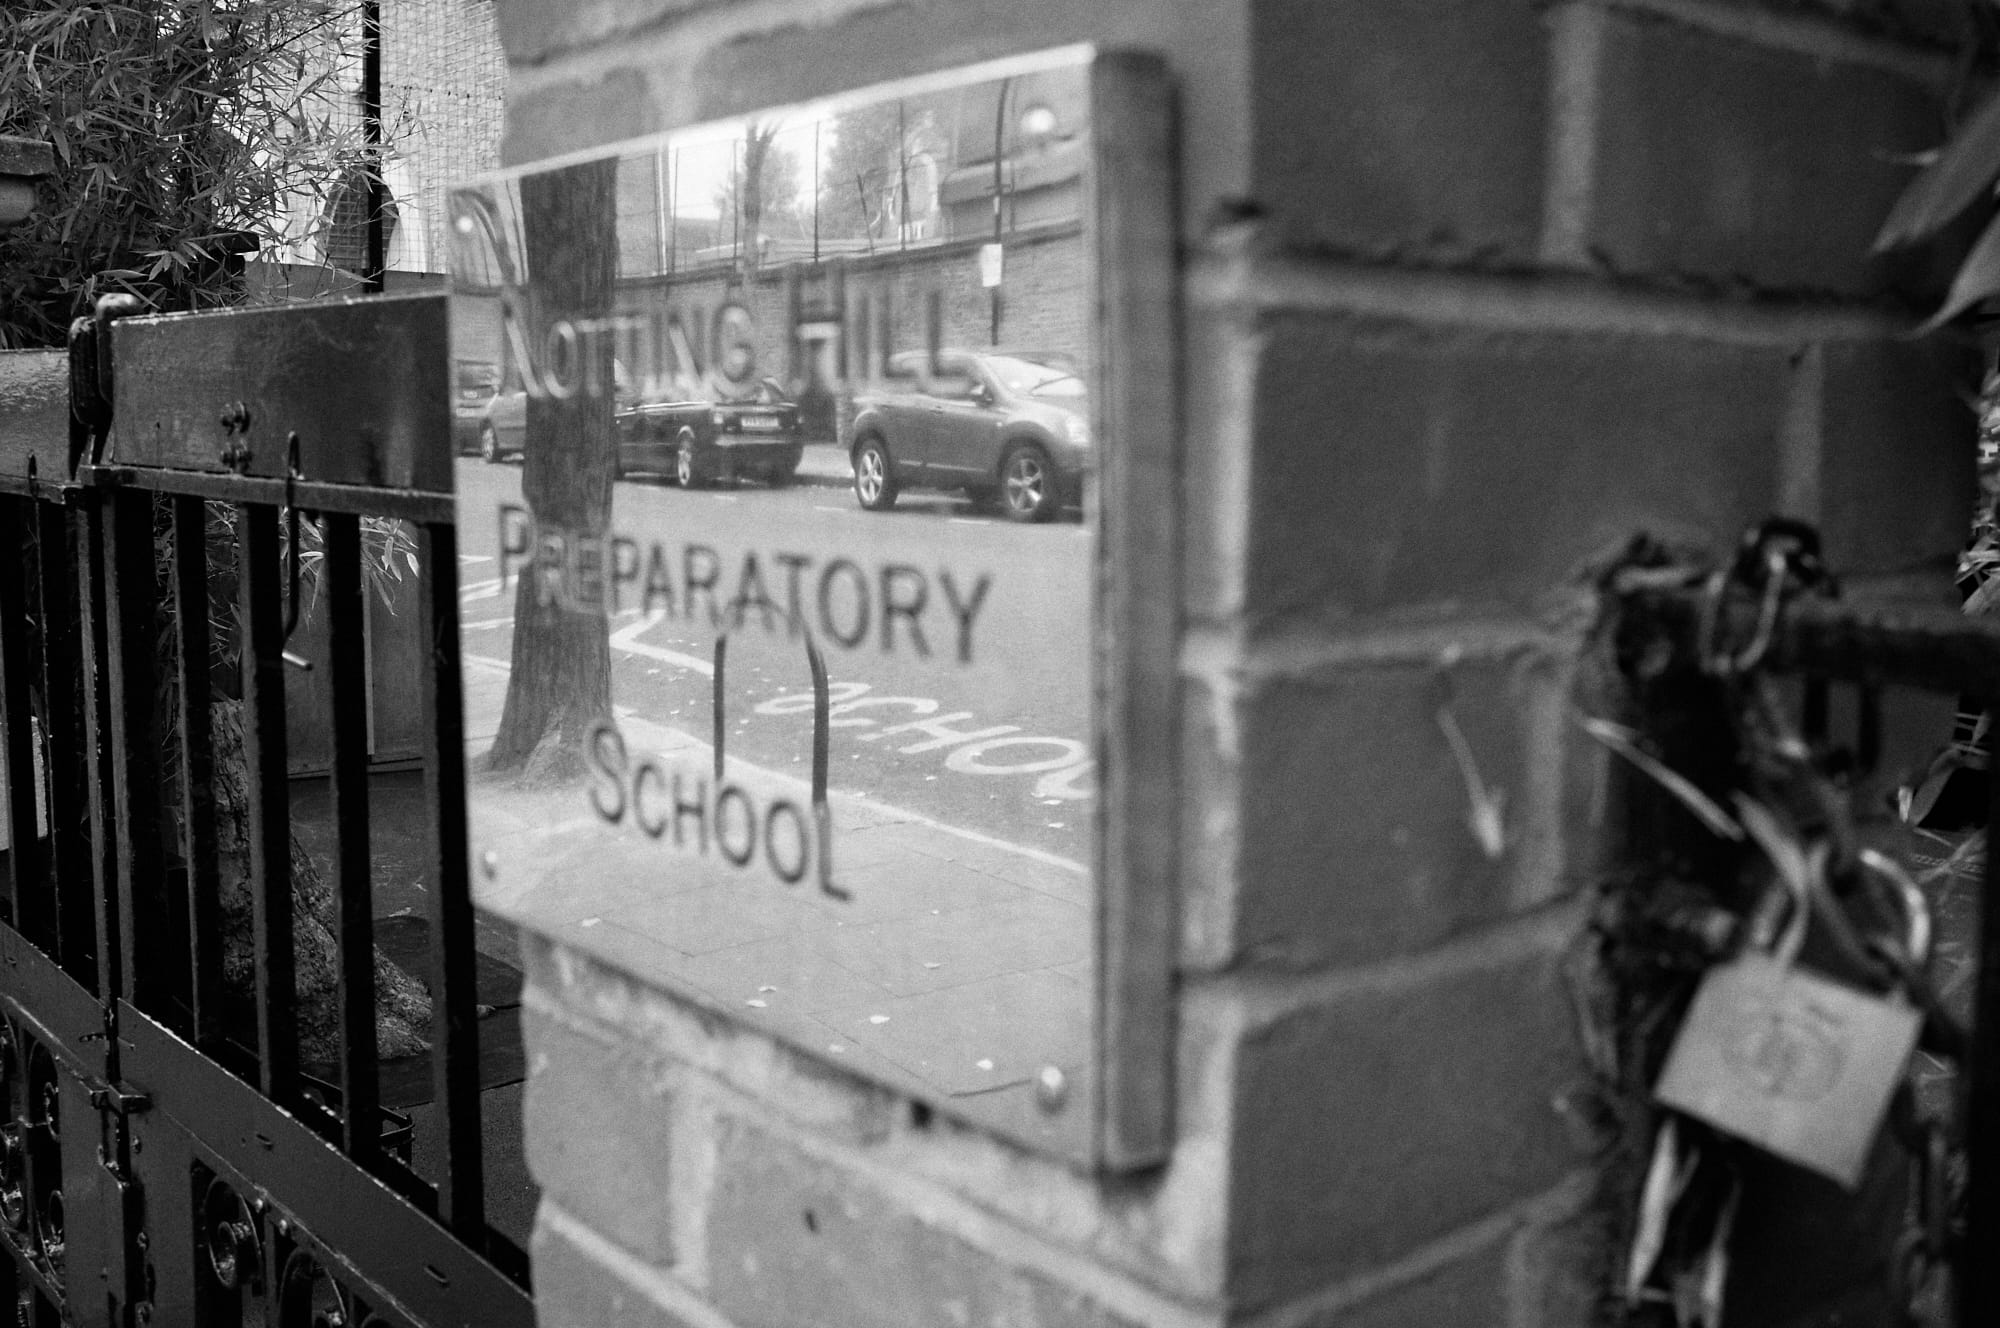 reflection in gate sign for Notting Hill Preparatory School